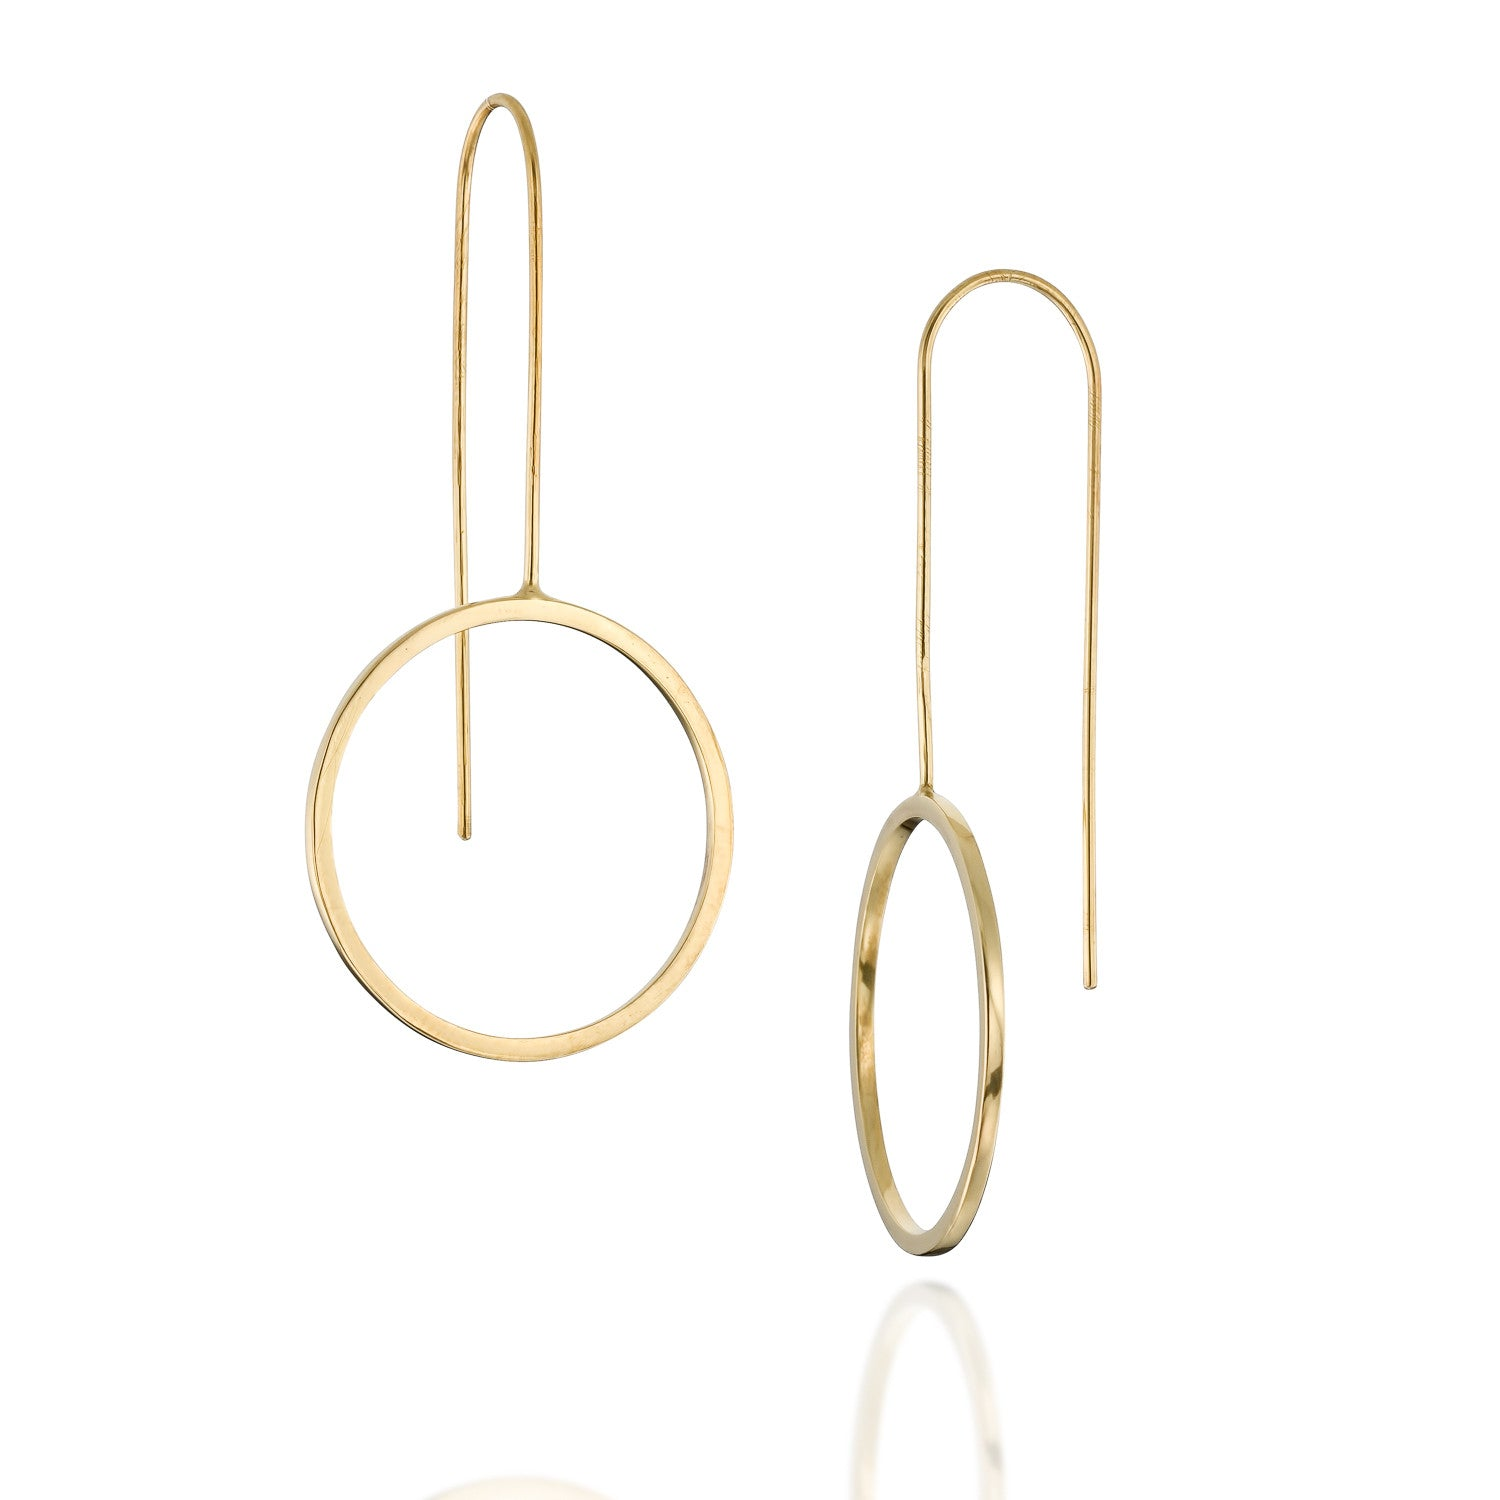 Minimalist Gold Circle Earrings, by BAARA Jewelry, Wire Circle Earrings, Long Drop Earrings, Geometric Minimal Long Gold Earrings